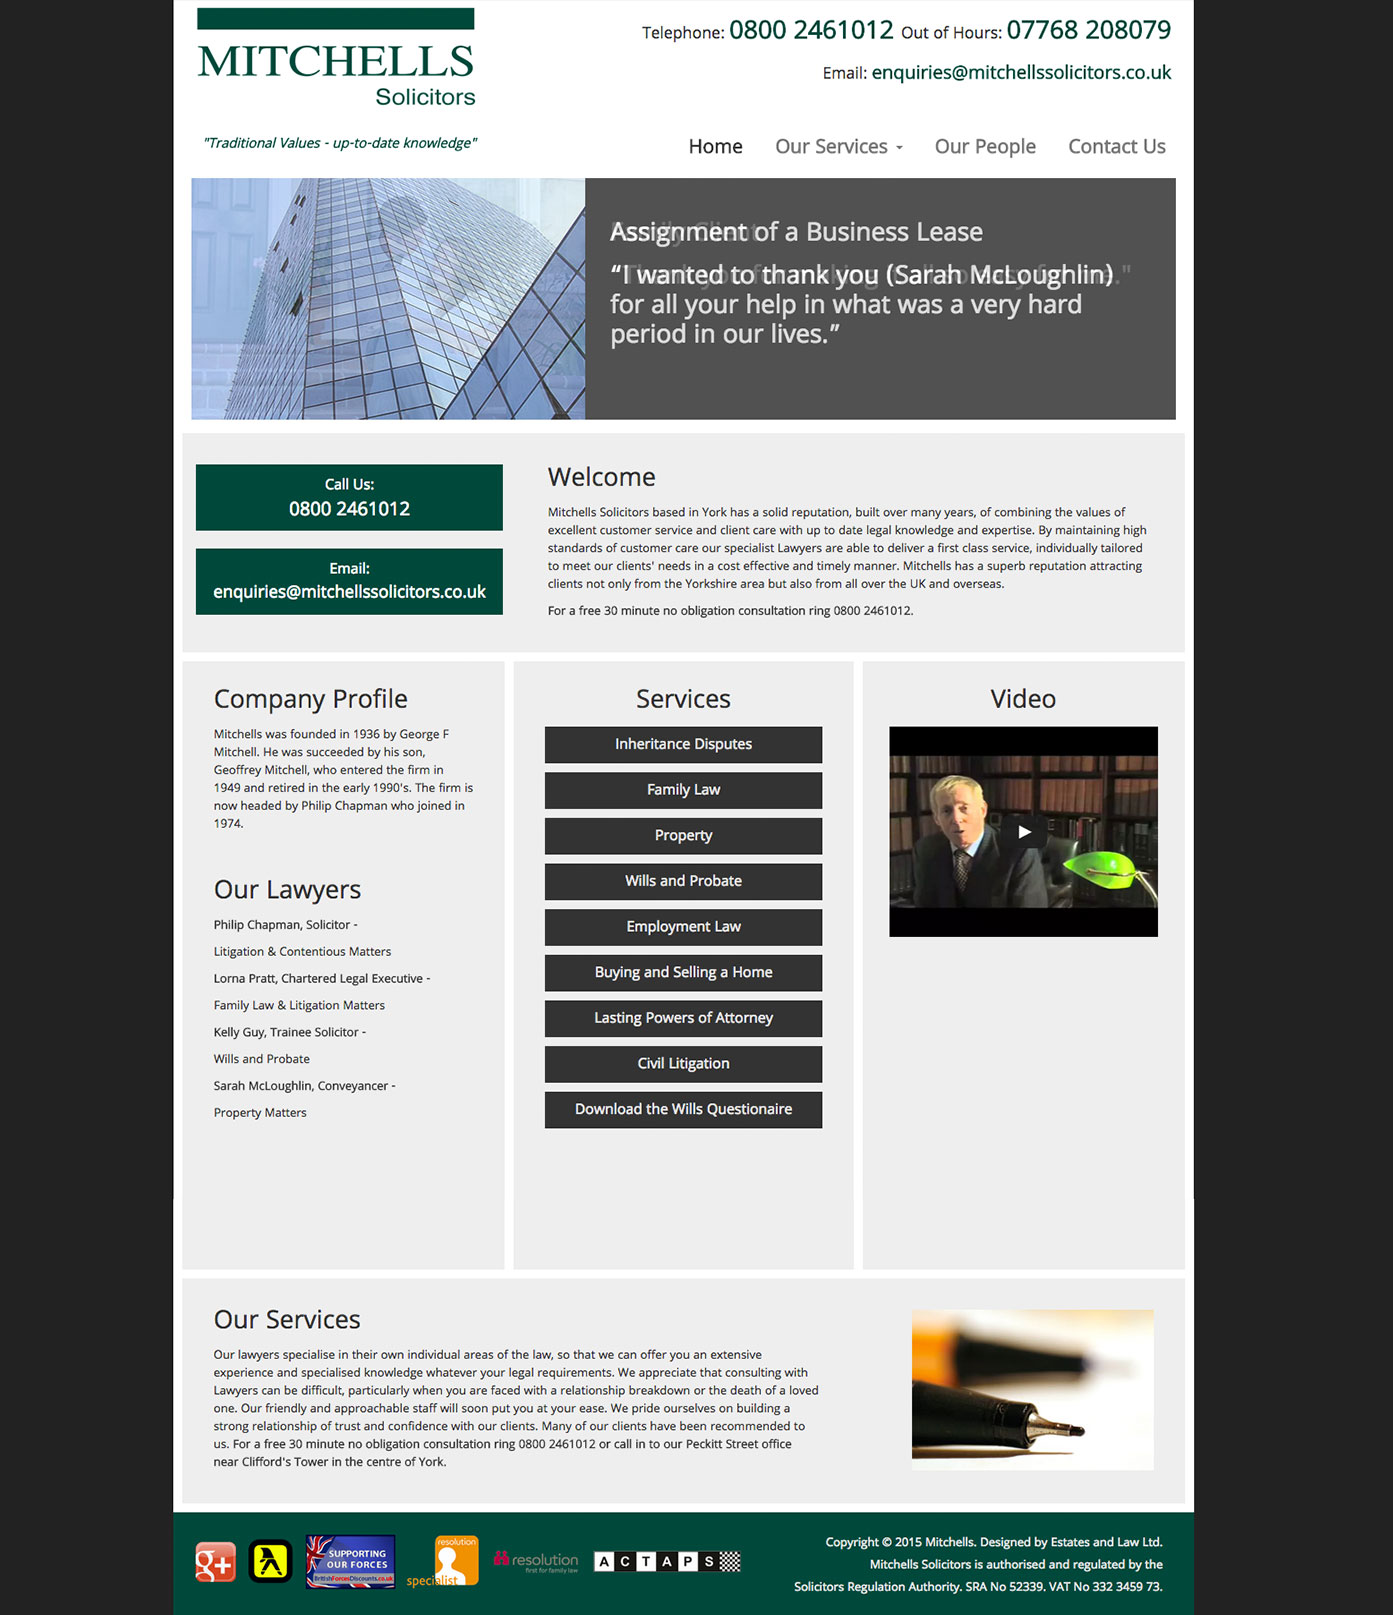 Mitchells Solicitors Website